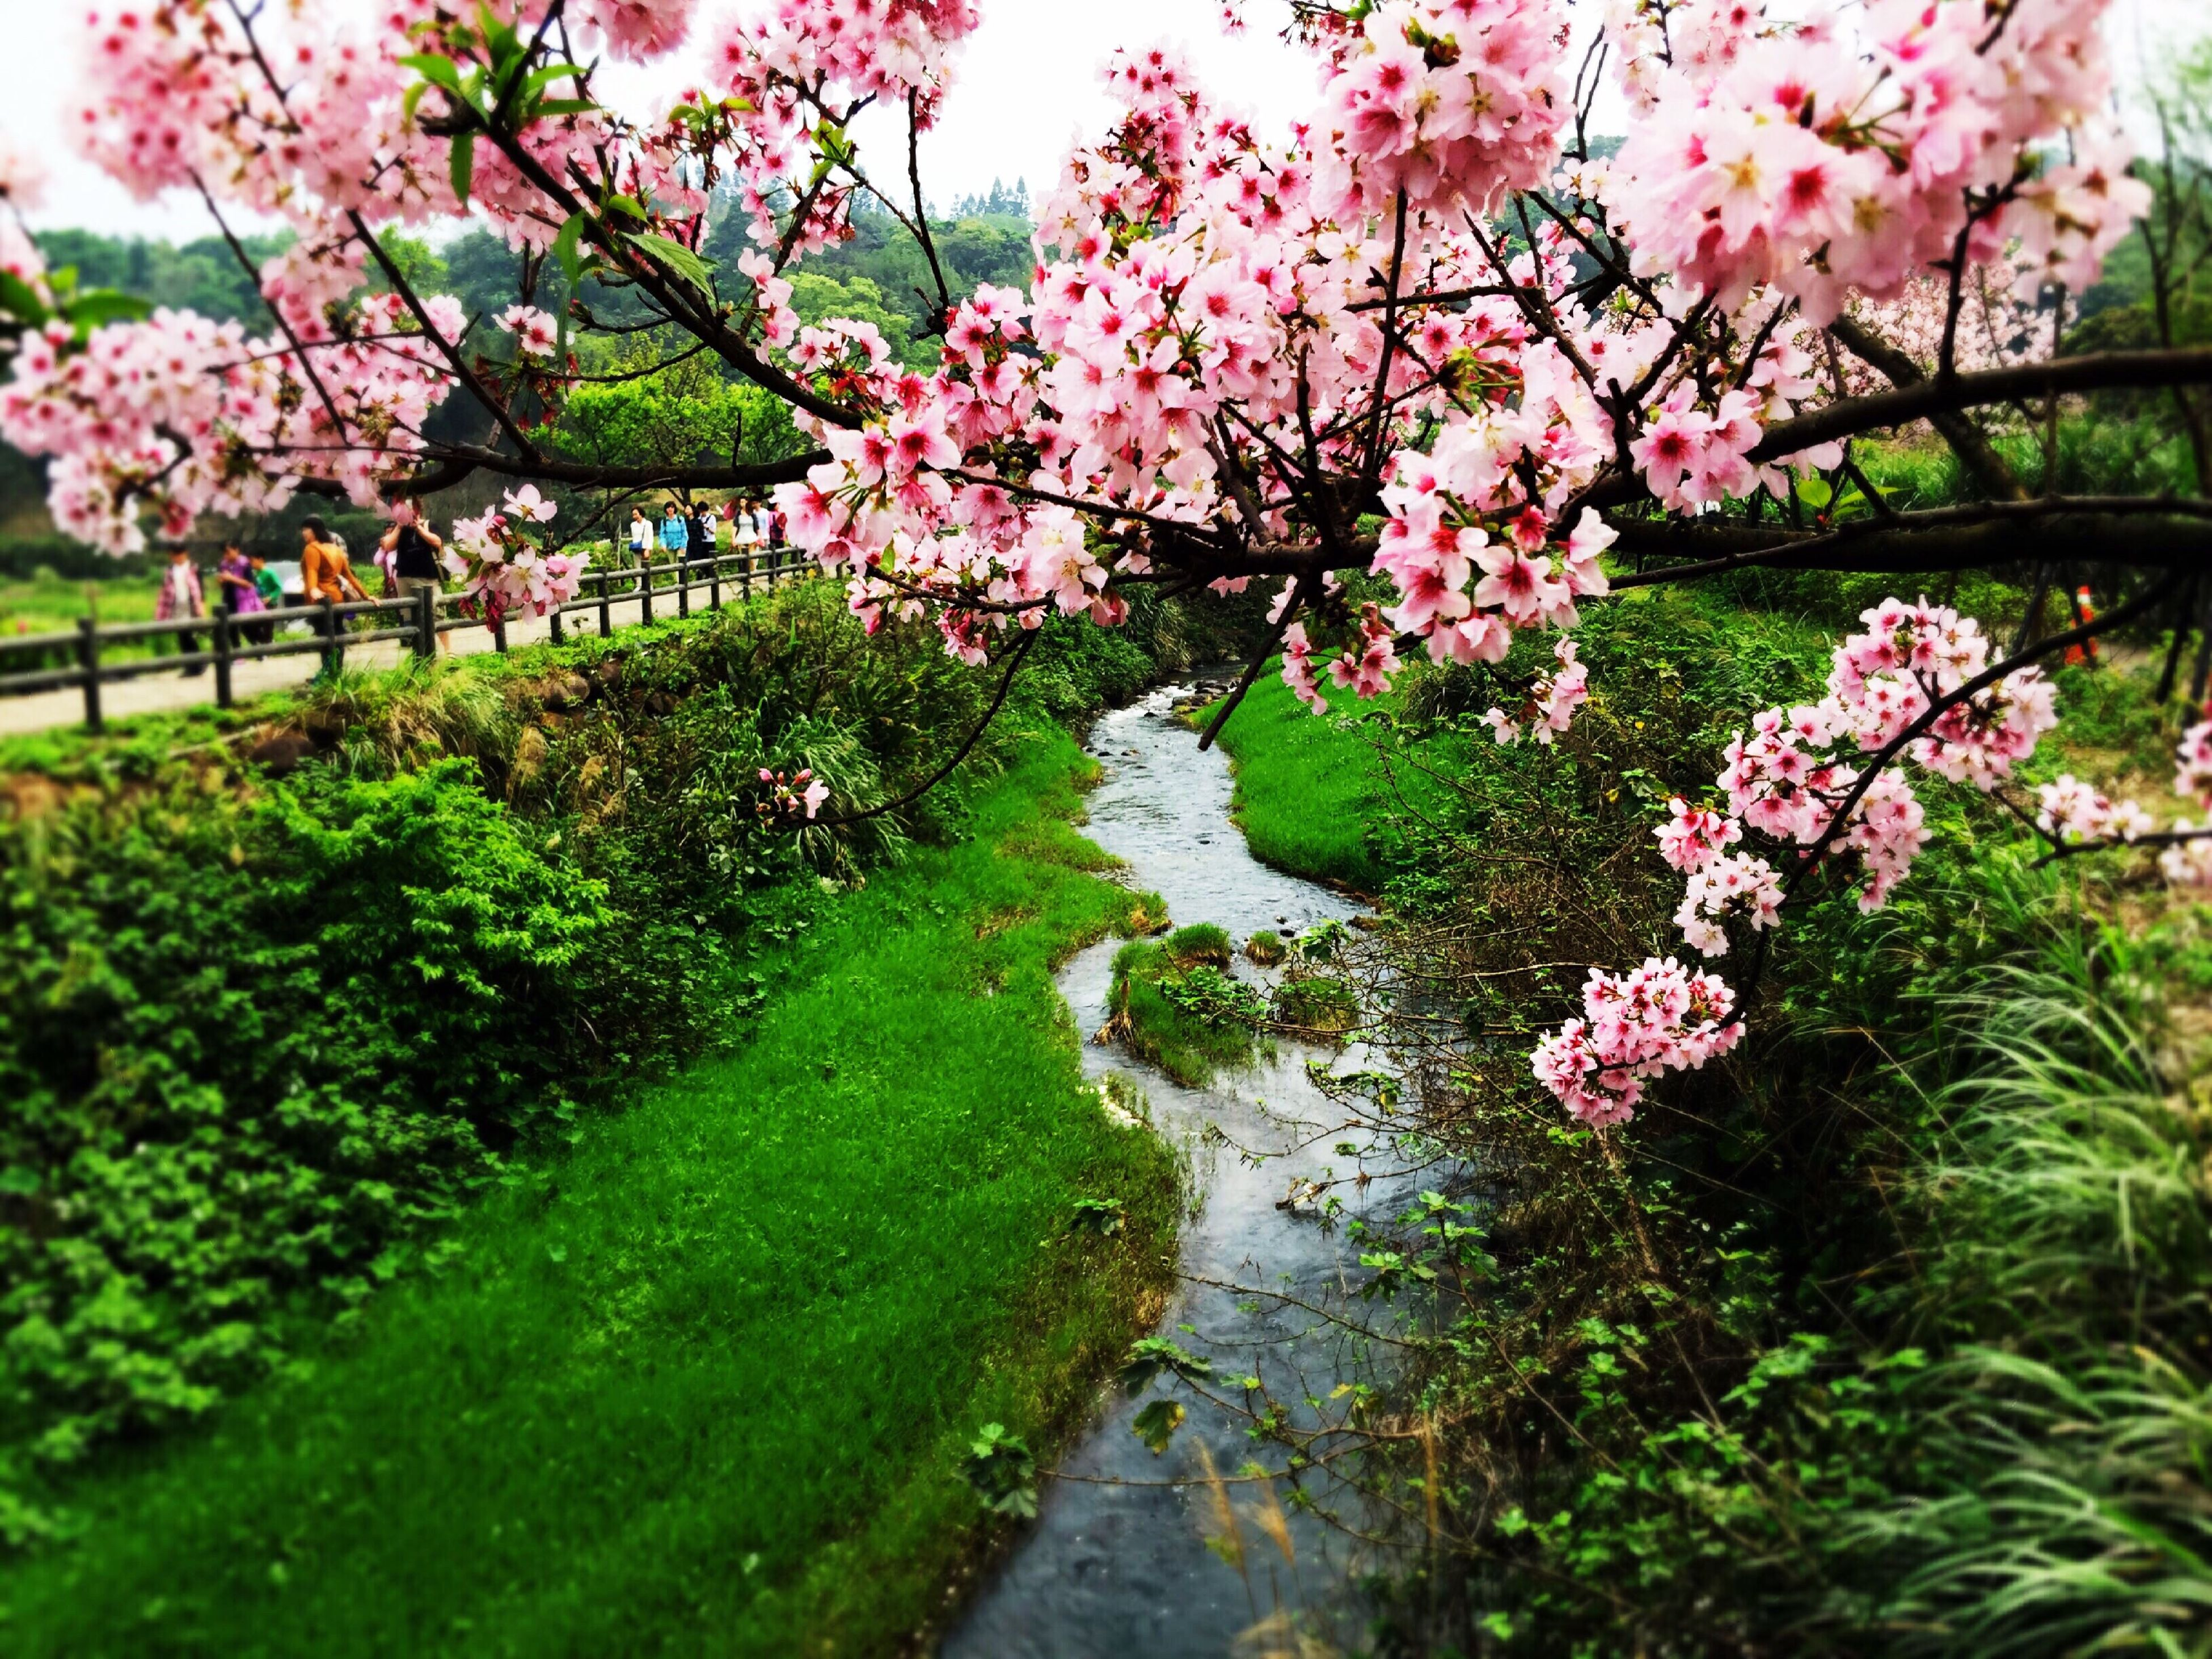 flower, freshness, growth, tree, beauty in nature, pink color, nature, branch, fragility, blossom, park - man made space, plant, green color, blooming, in bloom, cherry blossom, tranquility, day, cherry tree, springtime